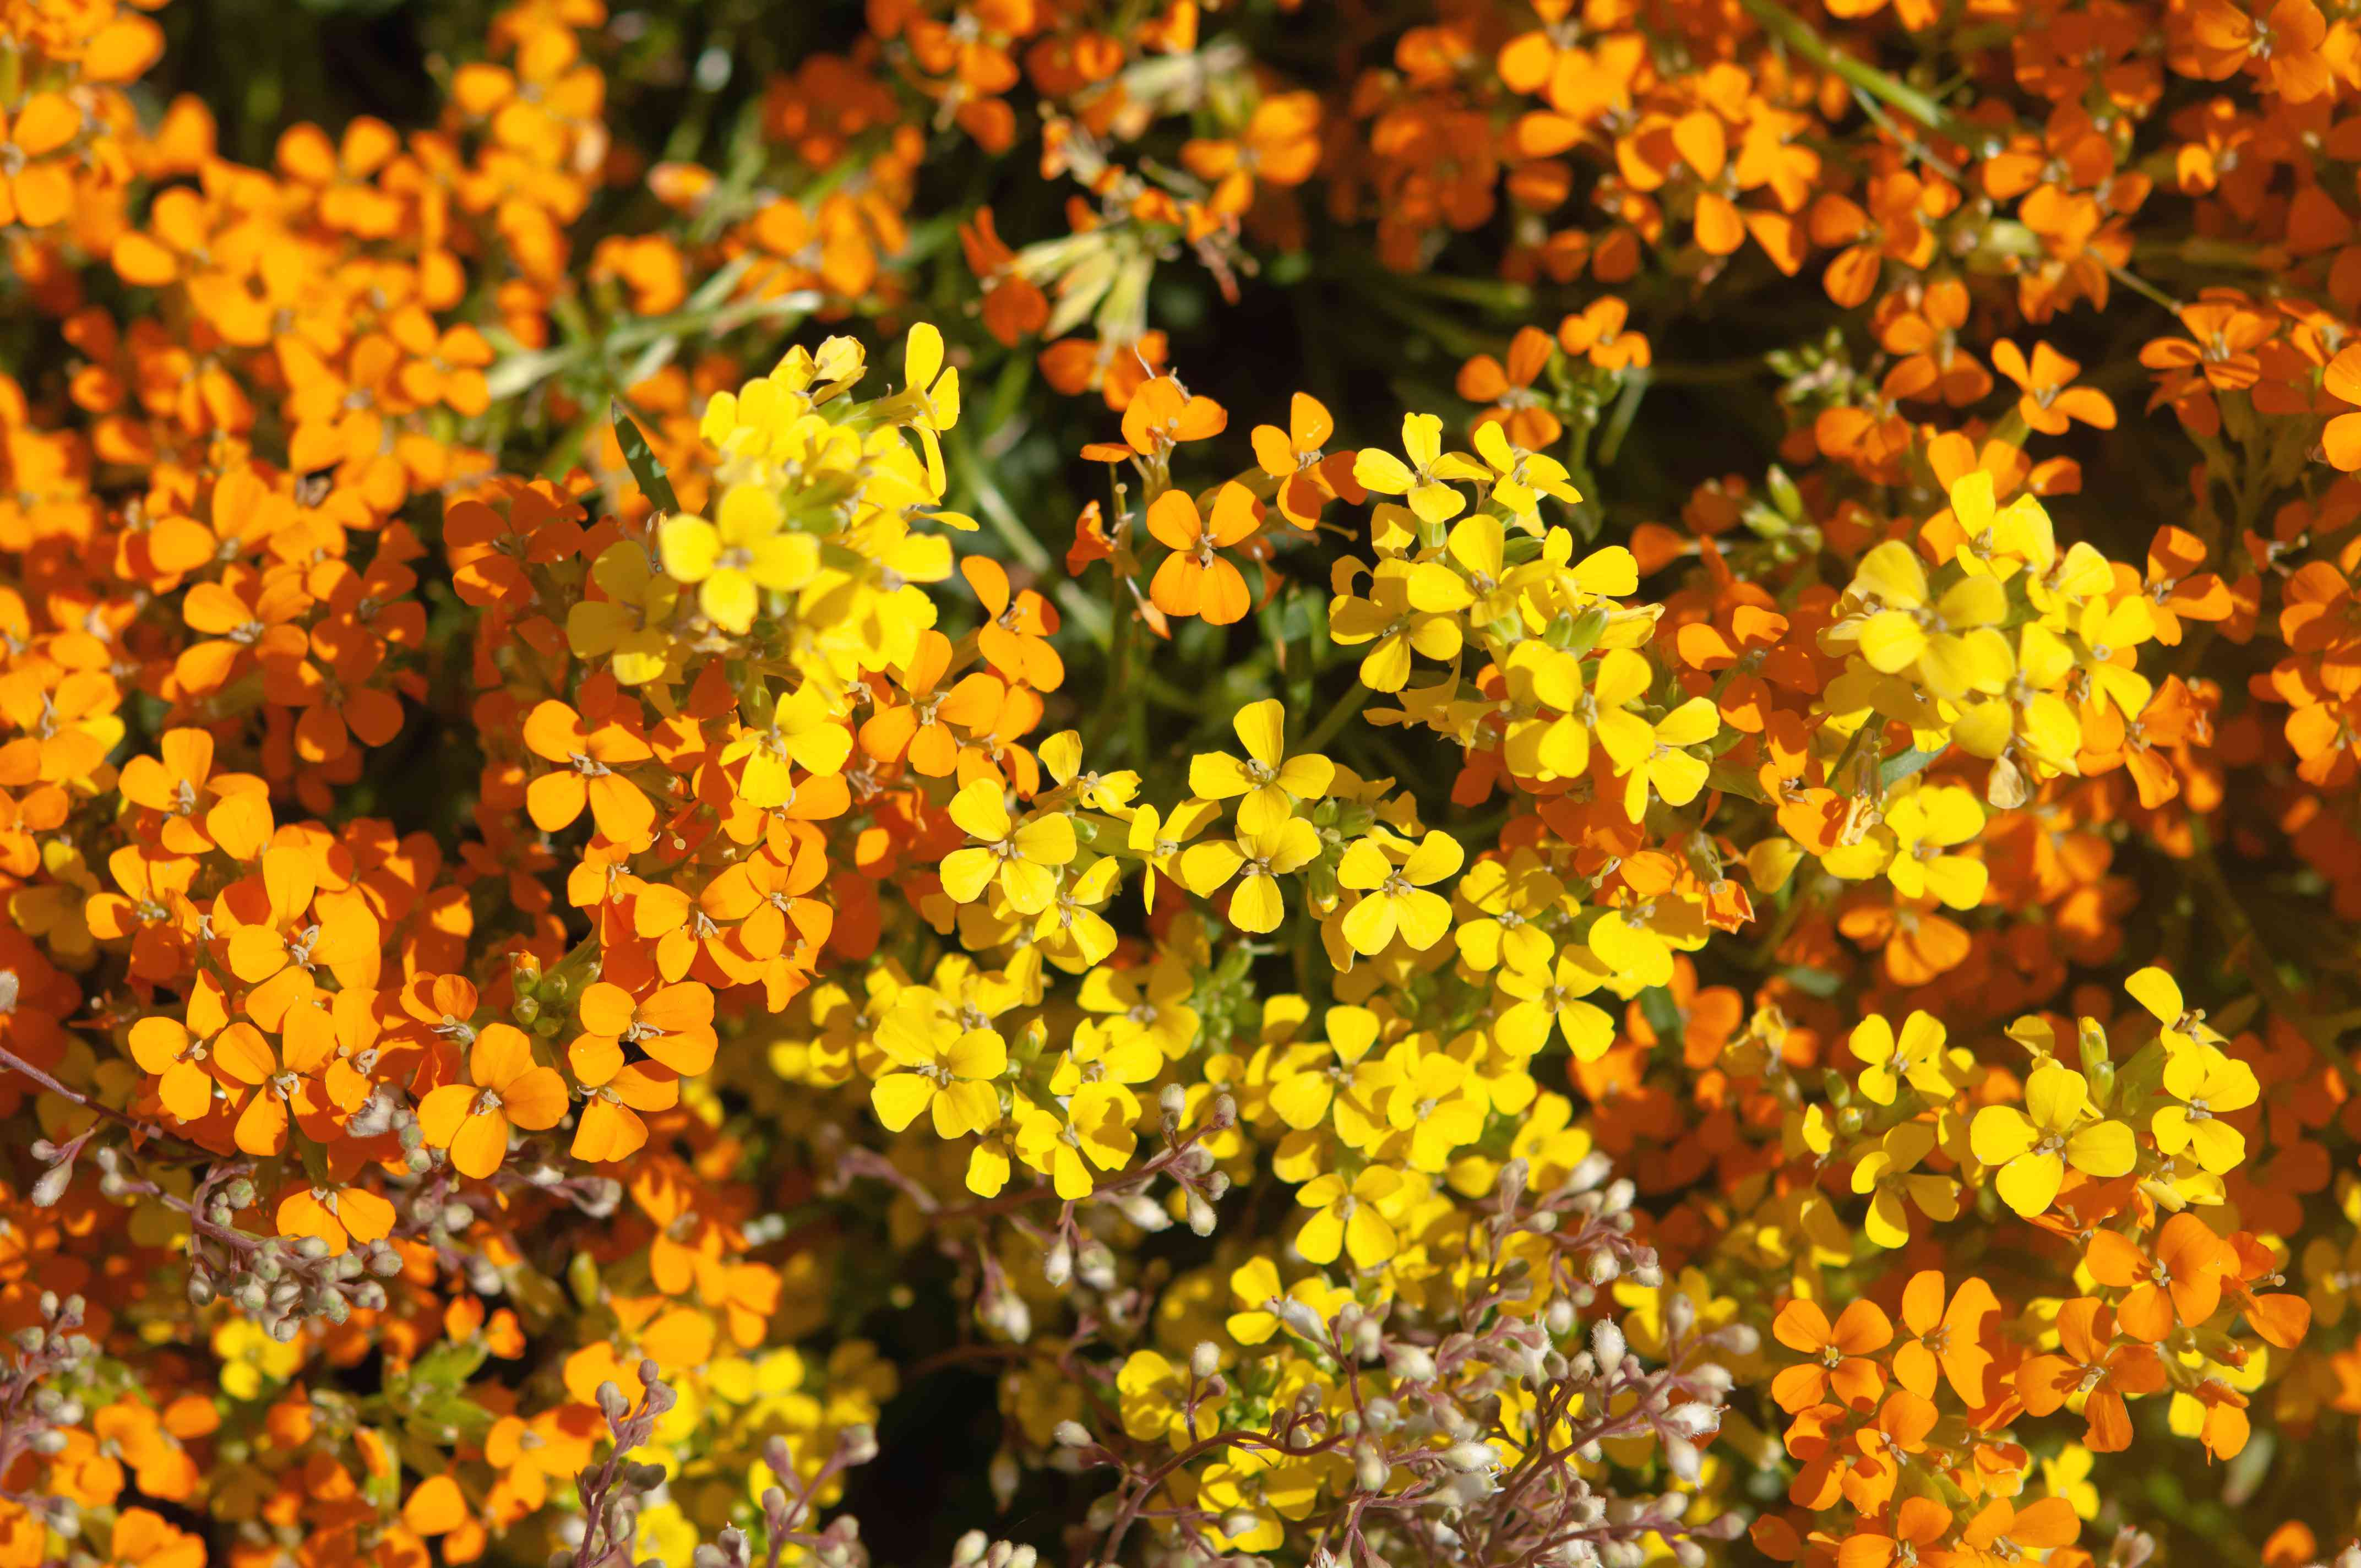 Altgold wallflower plant with yellow and orange flowers in sunlight